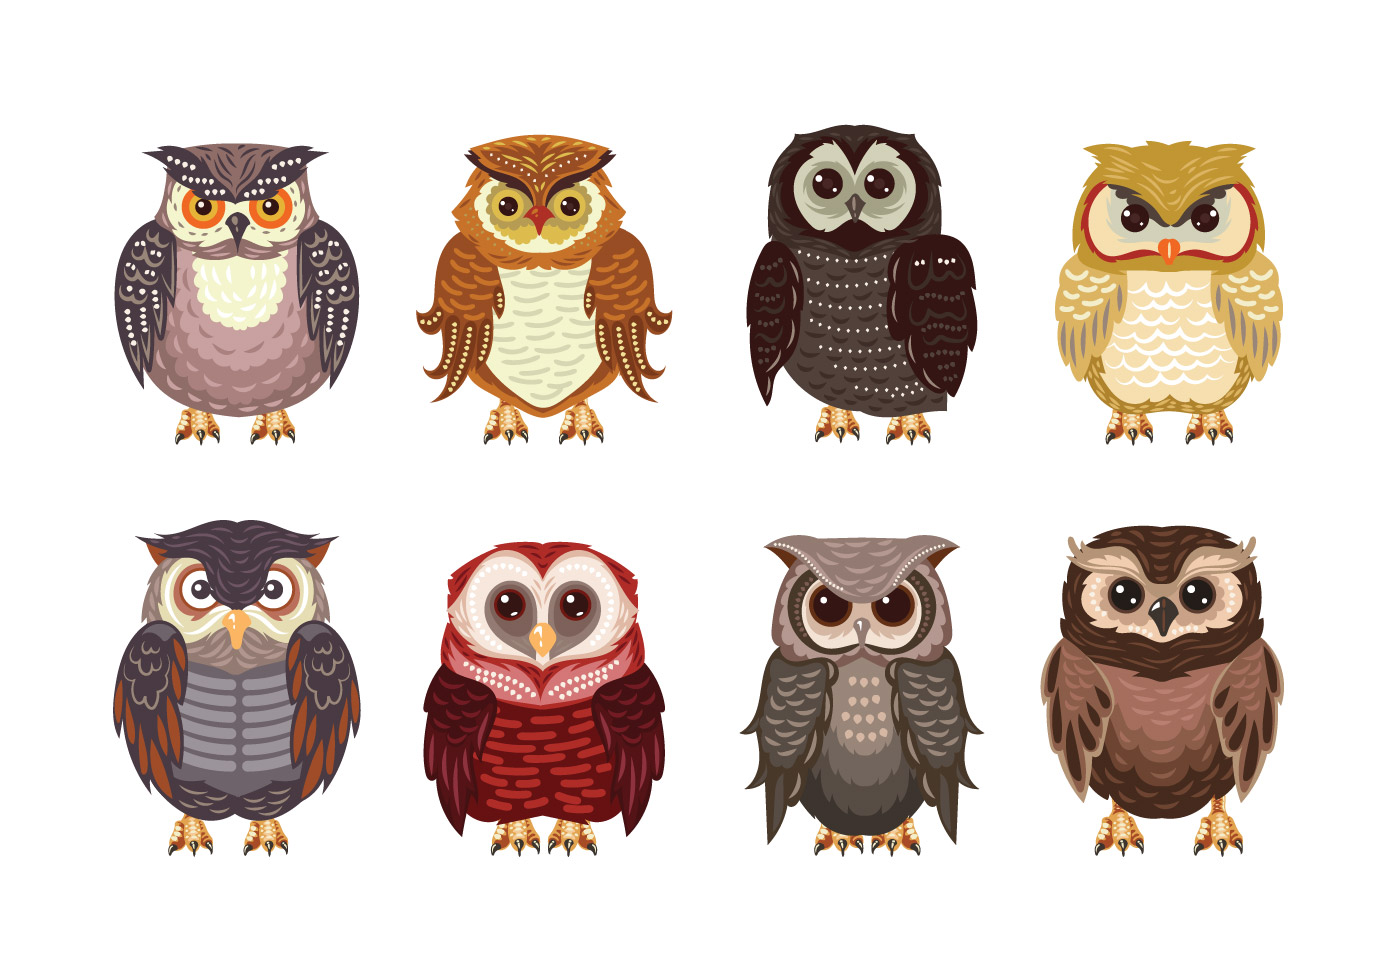 Cute Cartoon Animal Wallpaper Owl Or Buho Theme Collection Download Free Vector Art